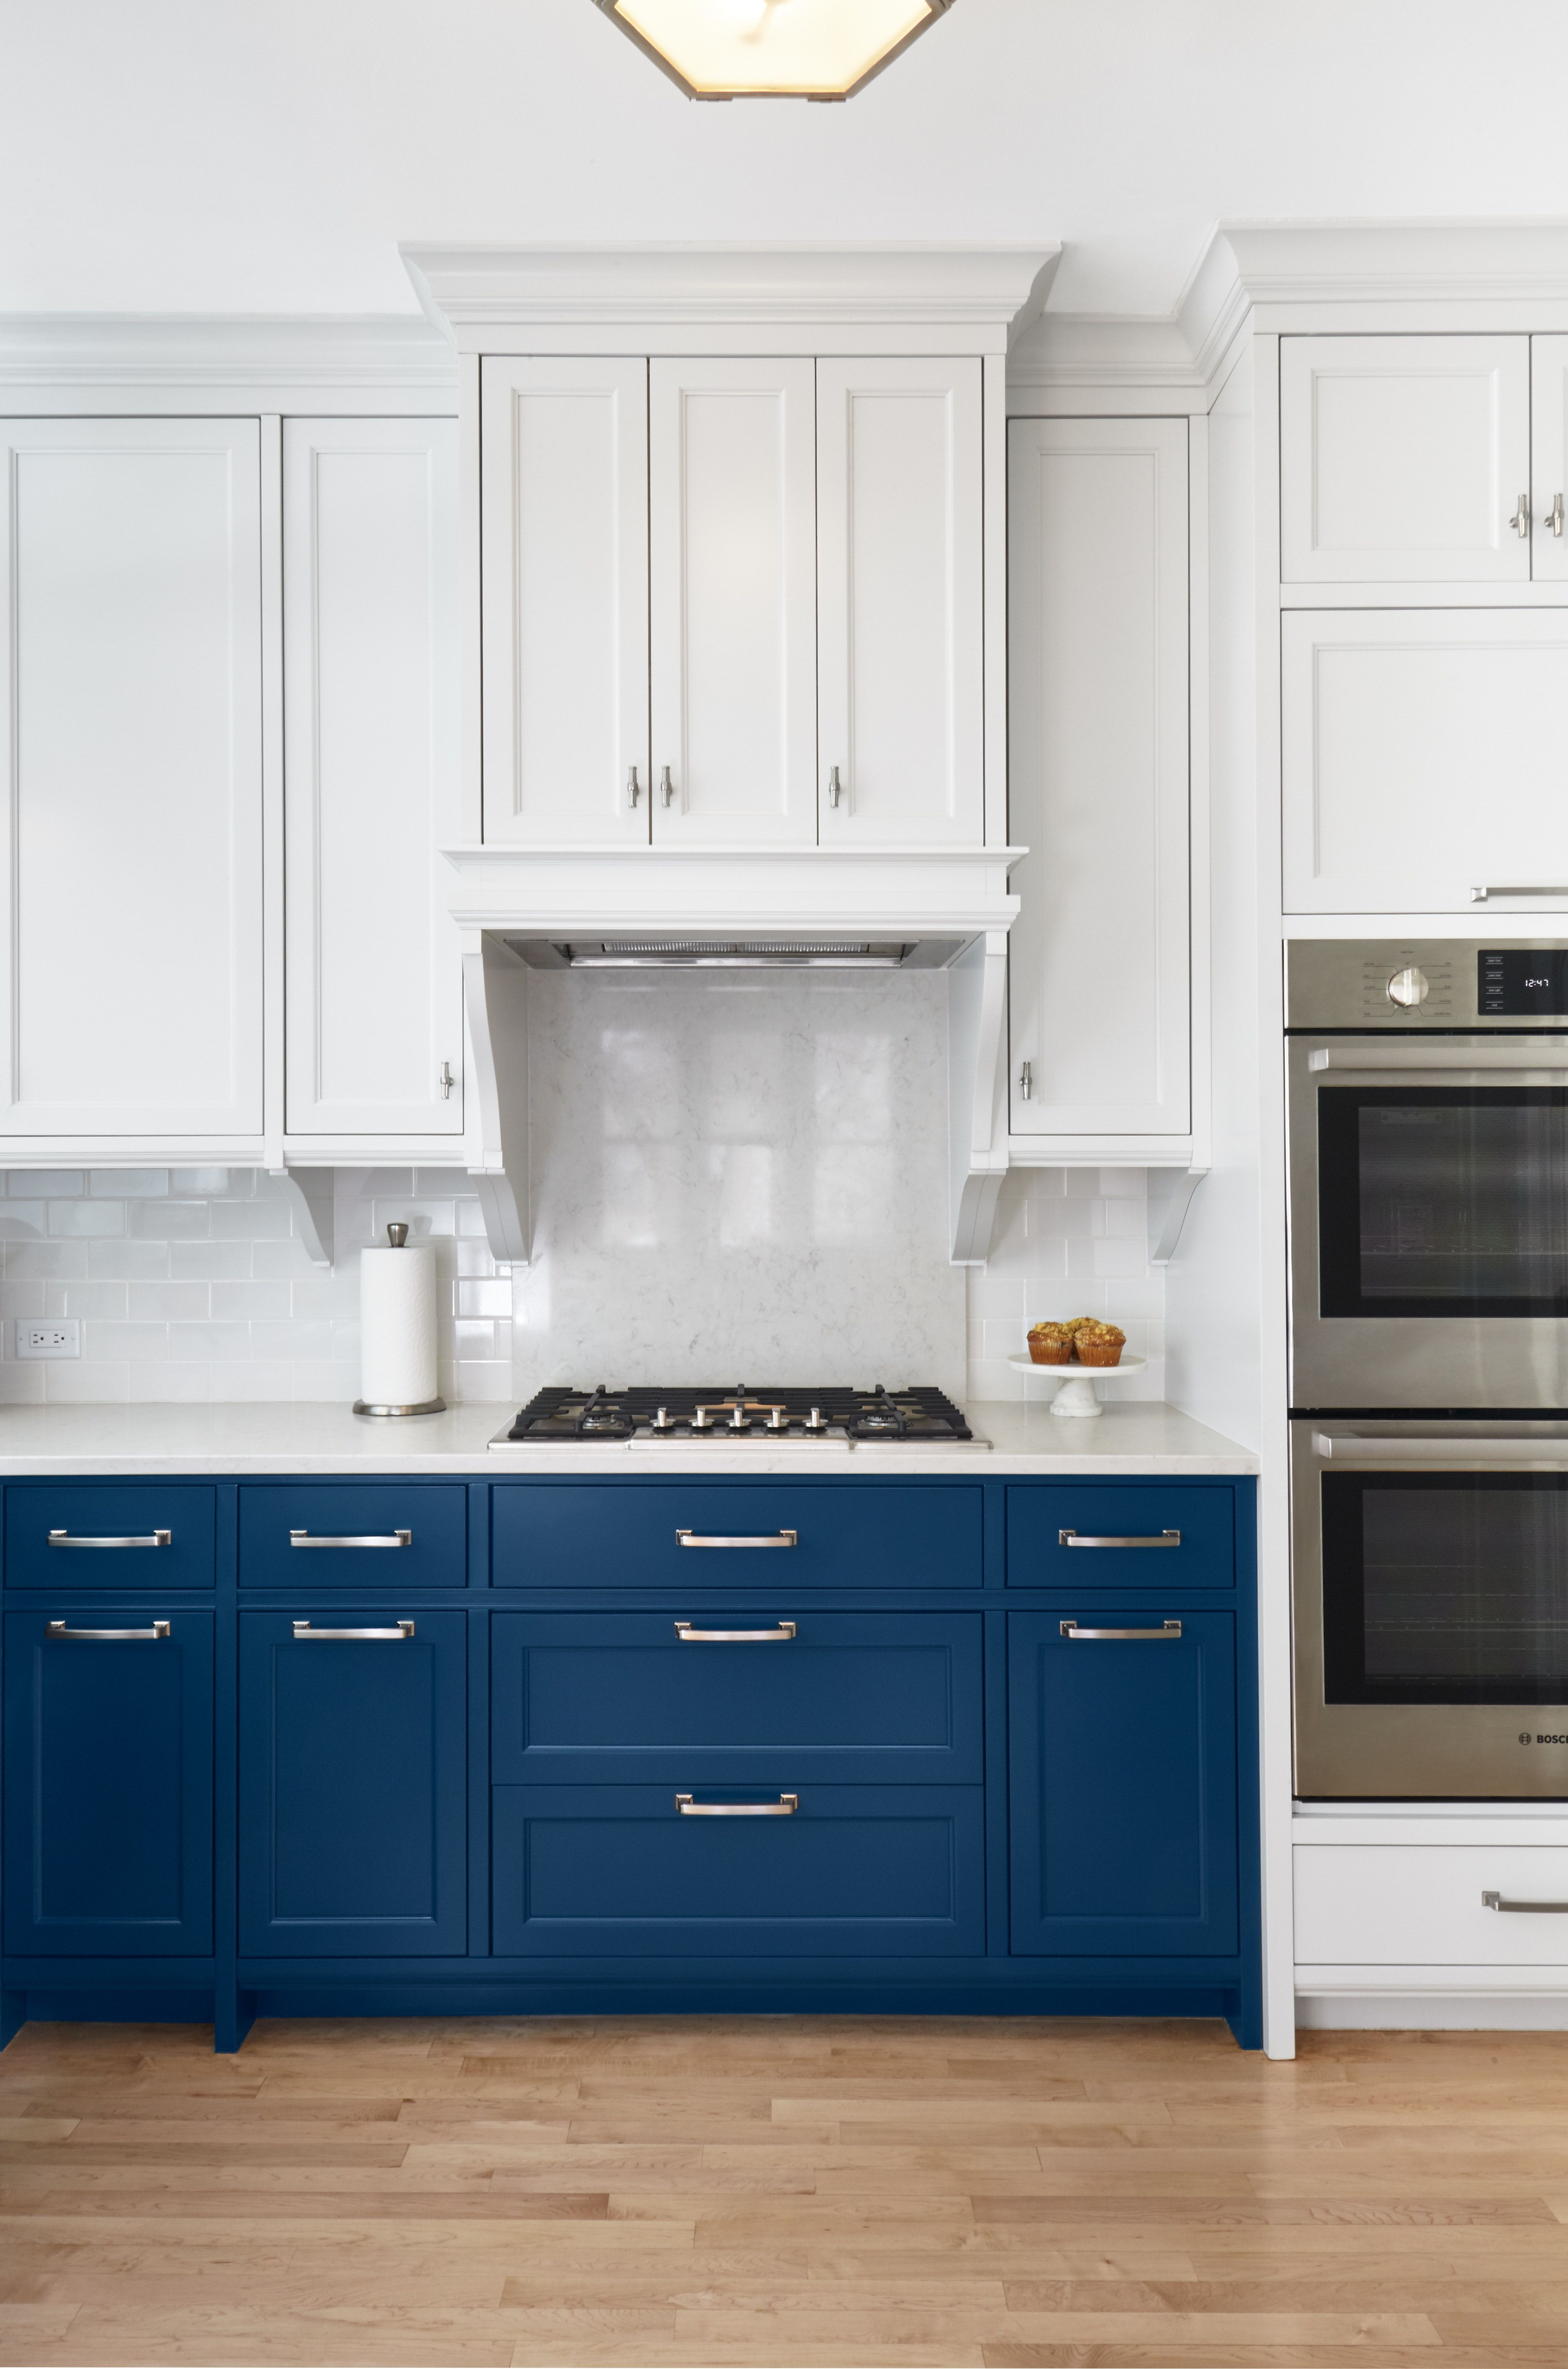 Classic Kitchen With Blue Lower And White Upper Cabinets Custom Concealed Hood Stylish Kitchen Two Tone Kitchen Cabinets New Kitchen Cabinets